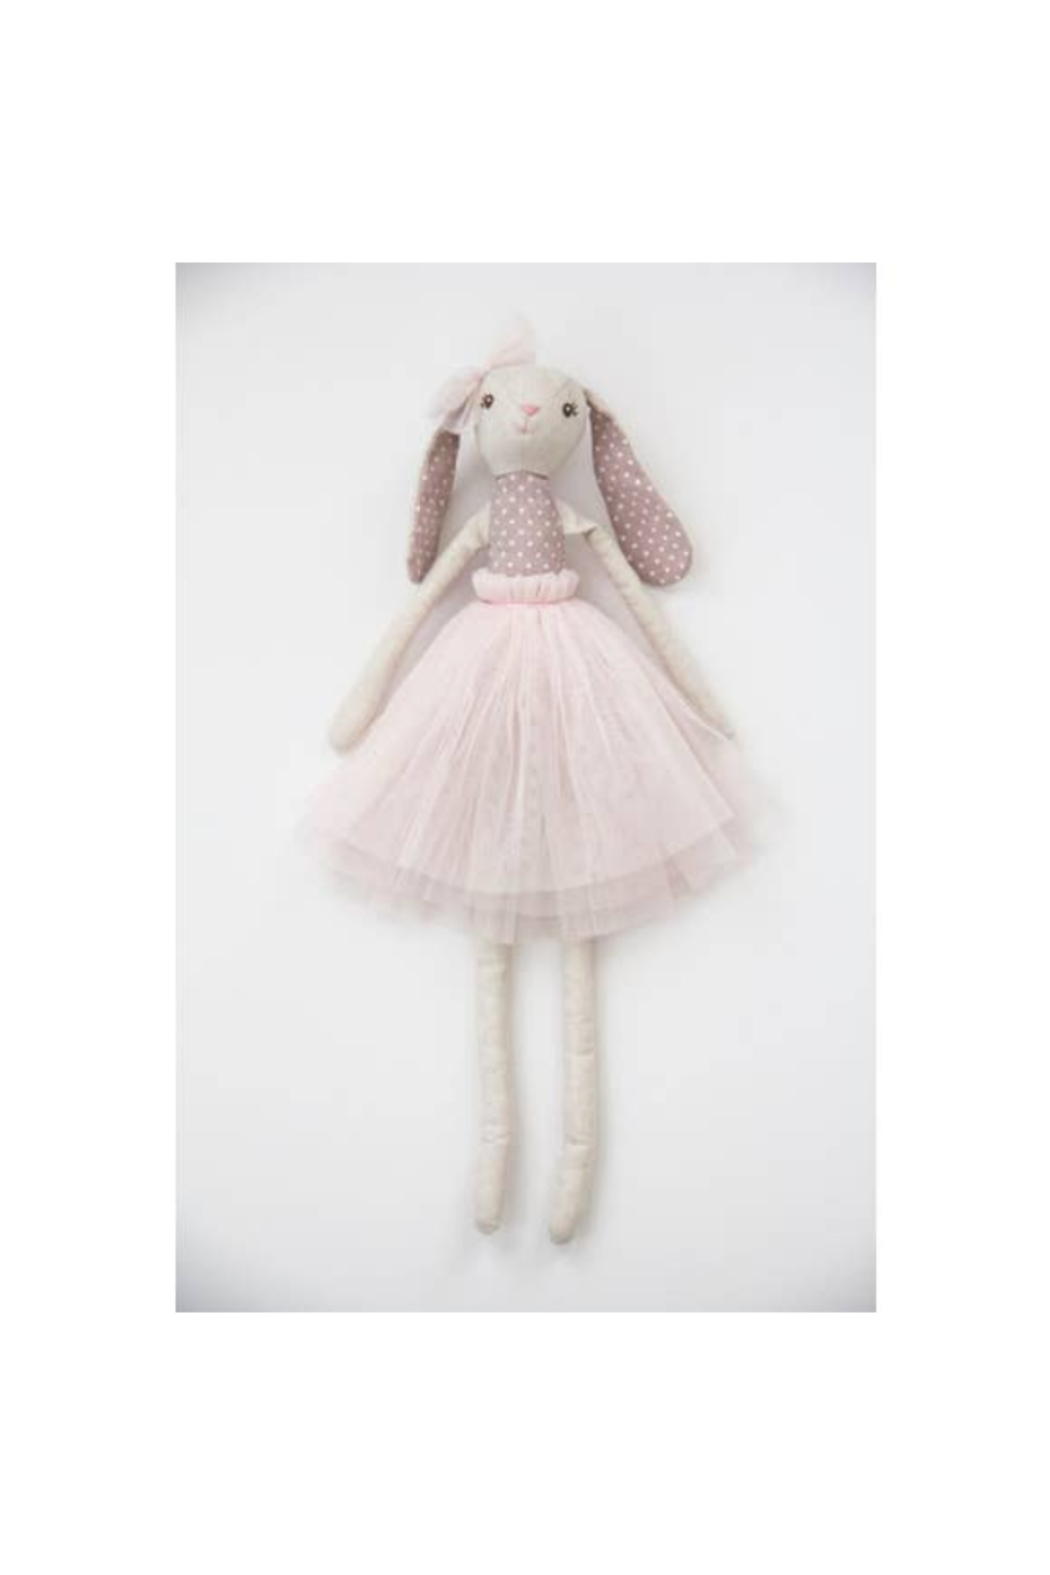 The Birds Nest BUNNY DOLL - Main Image